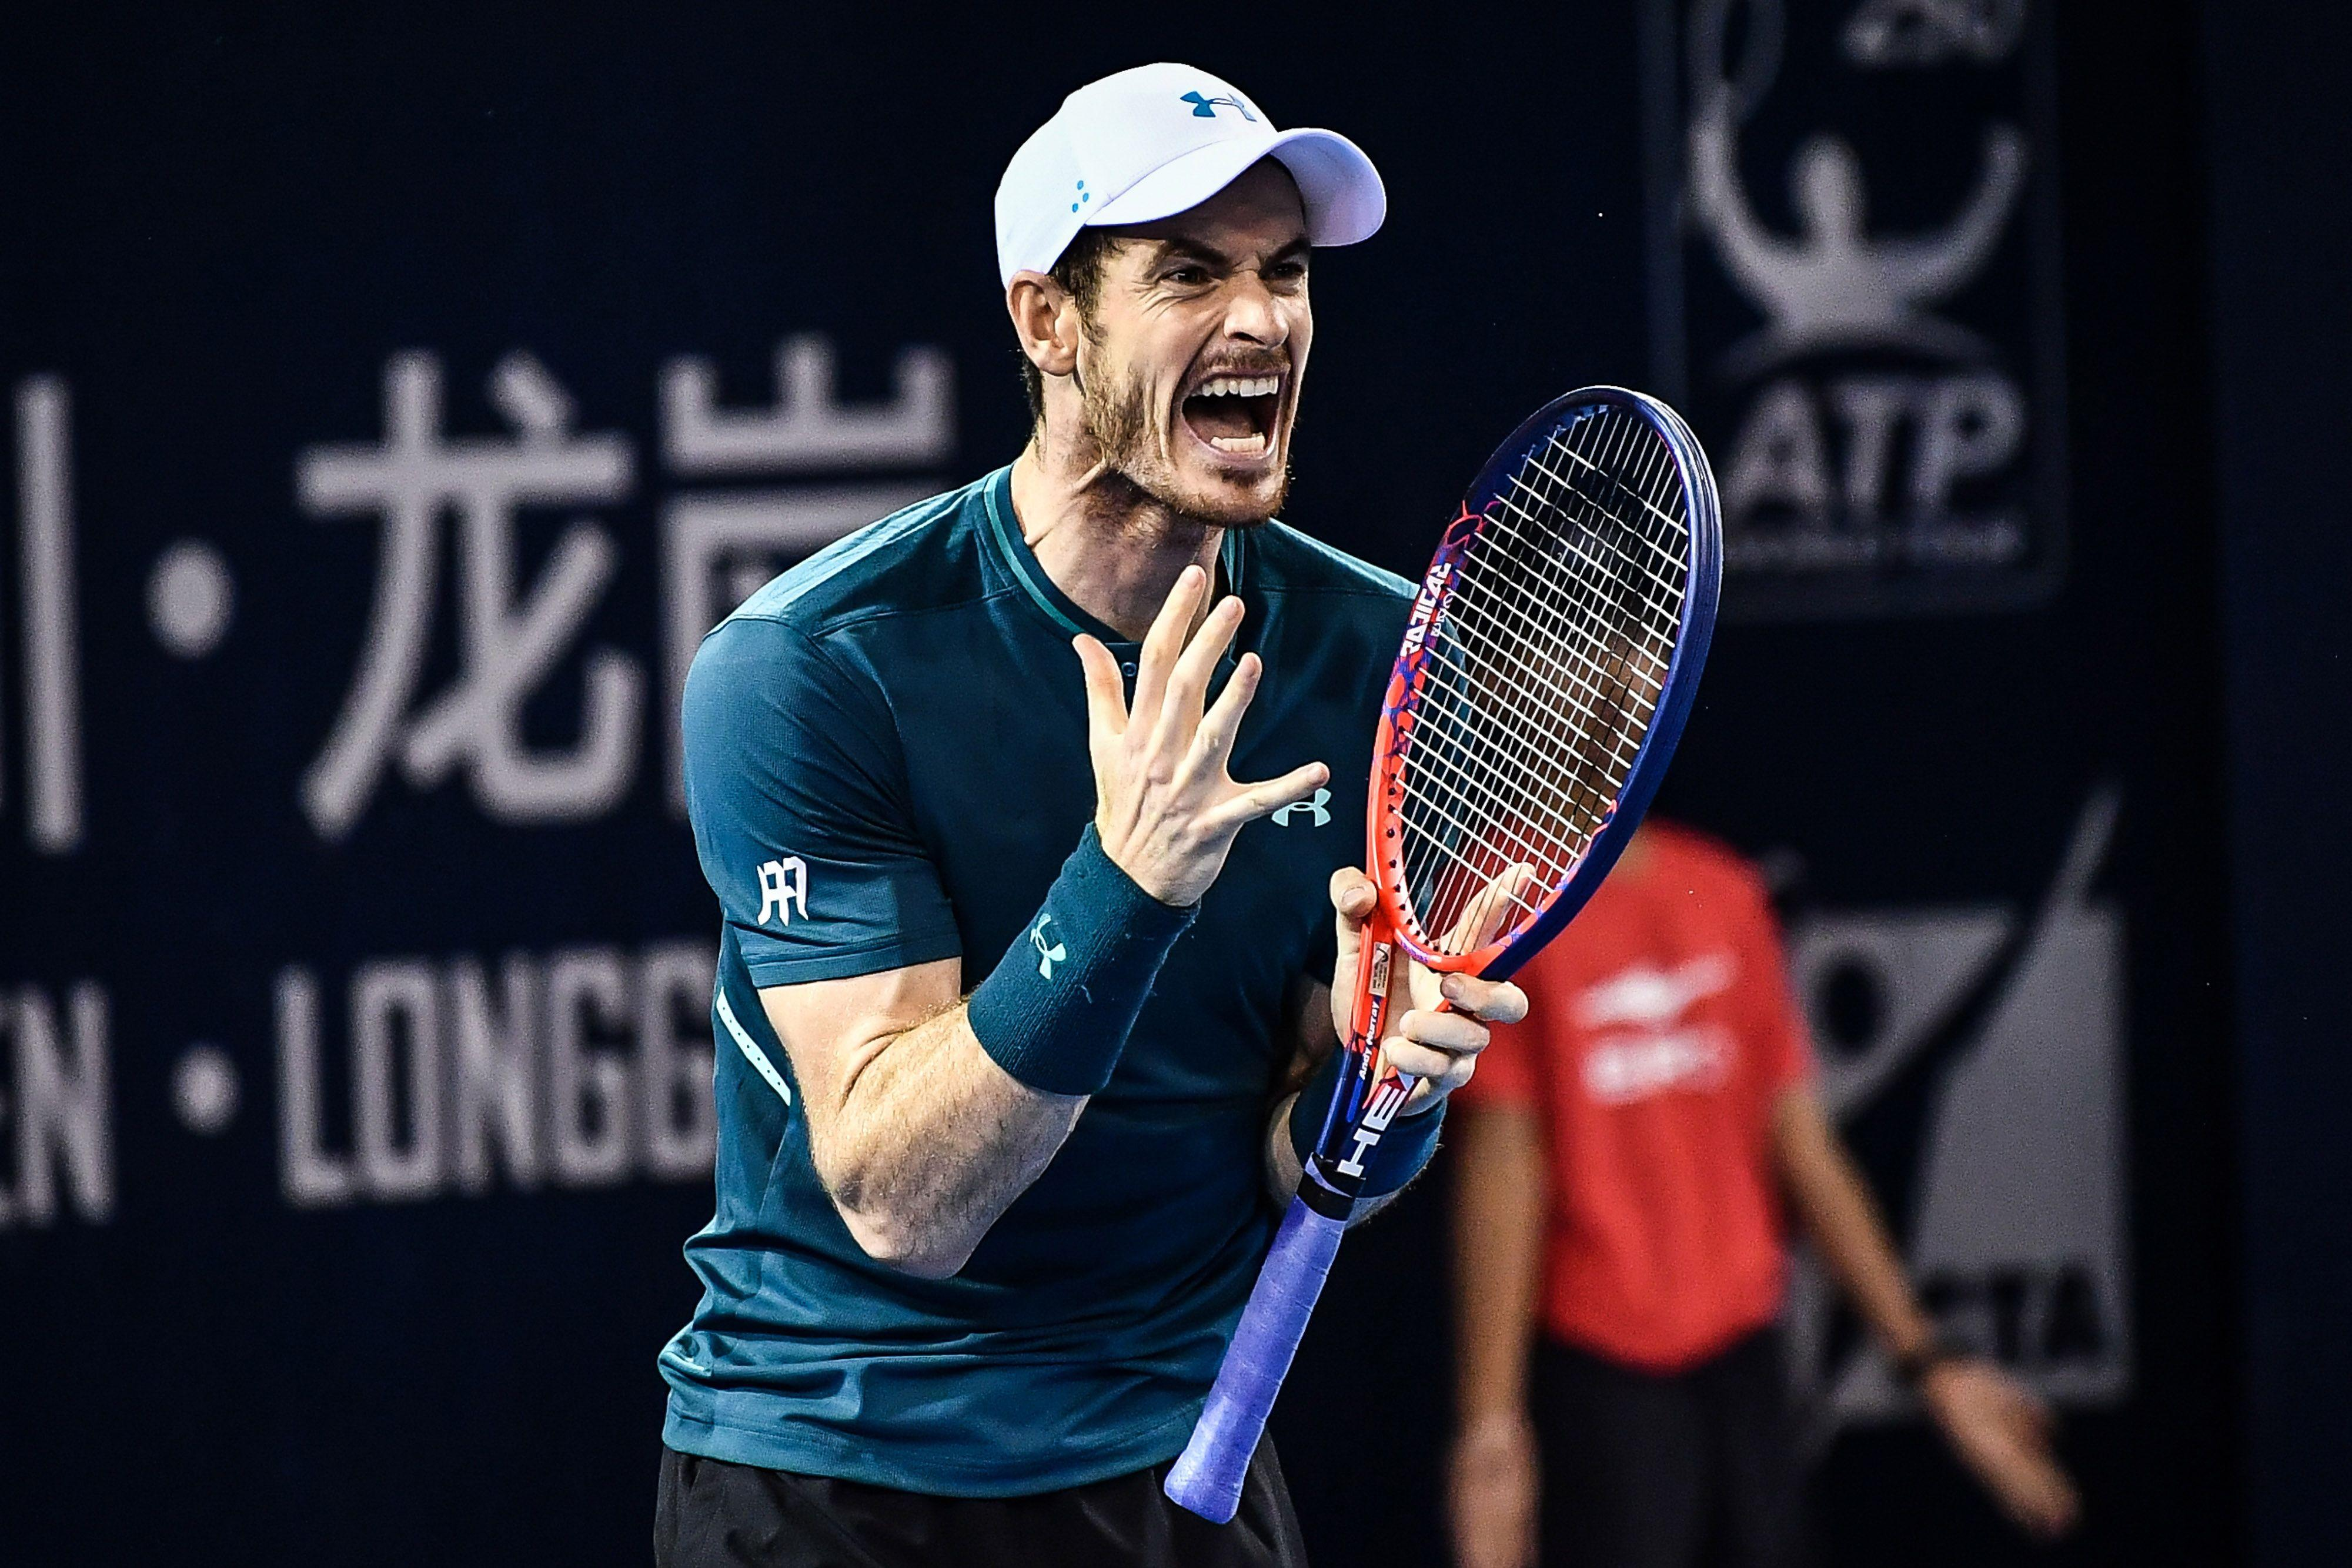 Andy Murray has revealed his season in over after withdrawing from Beijing